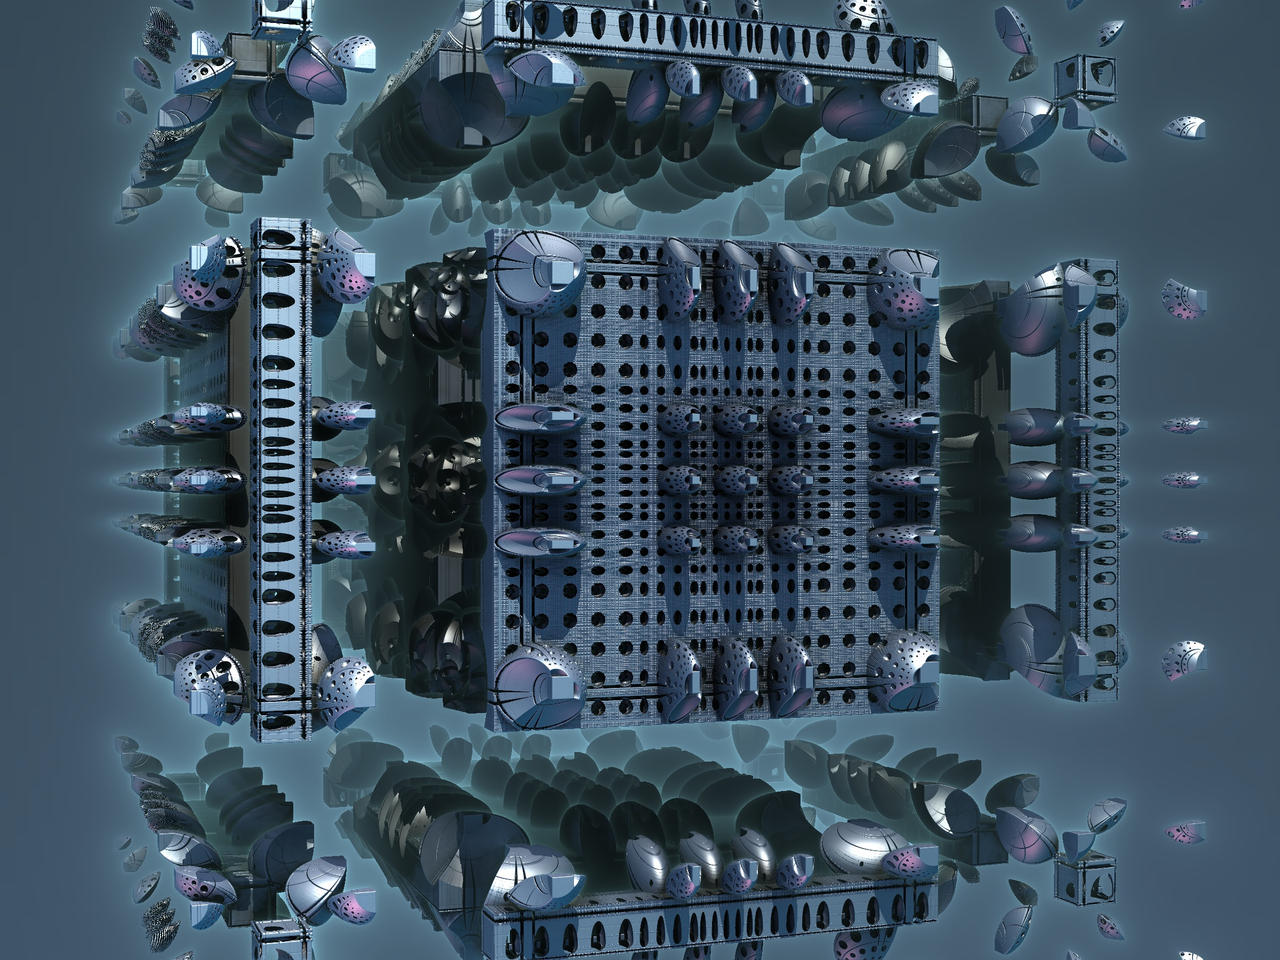 CPU starter by Fiery-Fire